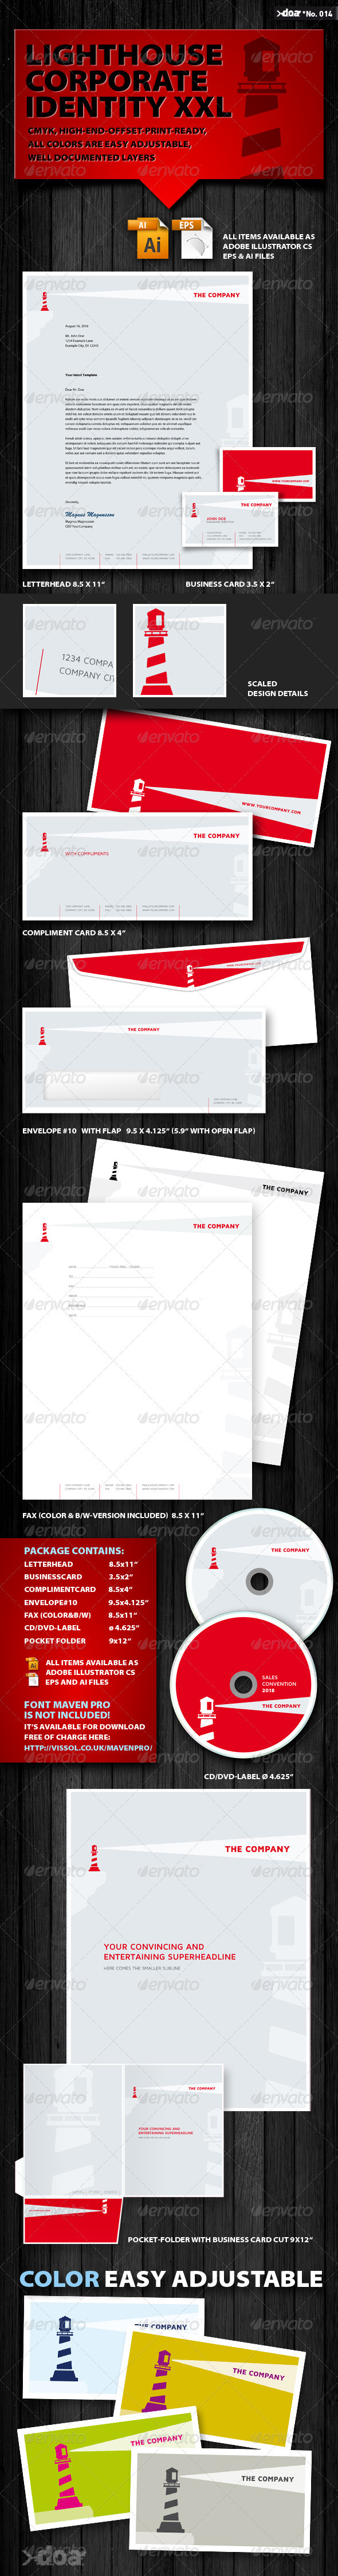 Lighthouse Corporate Identity XXL - Stationery Print Templates